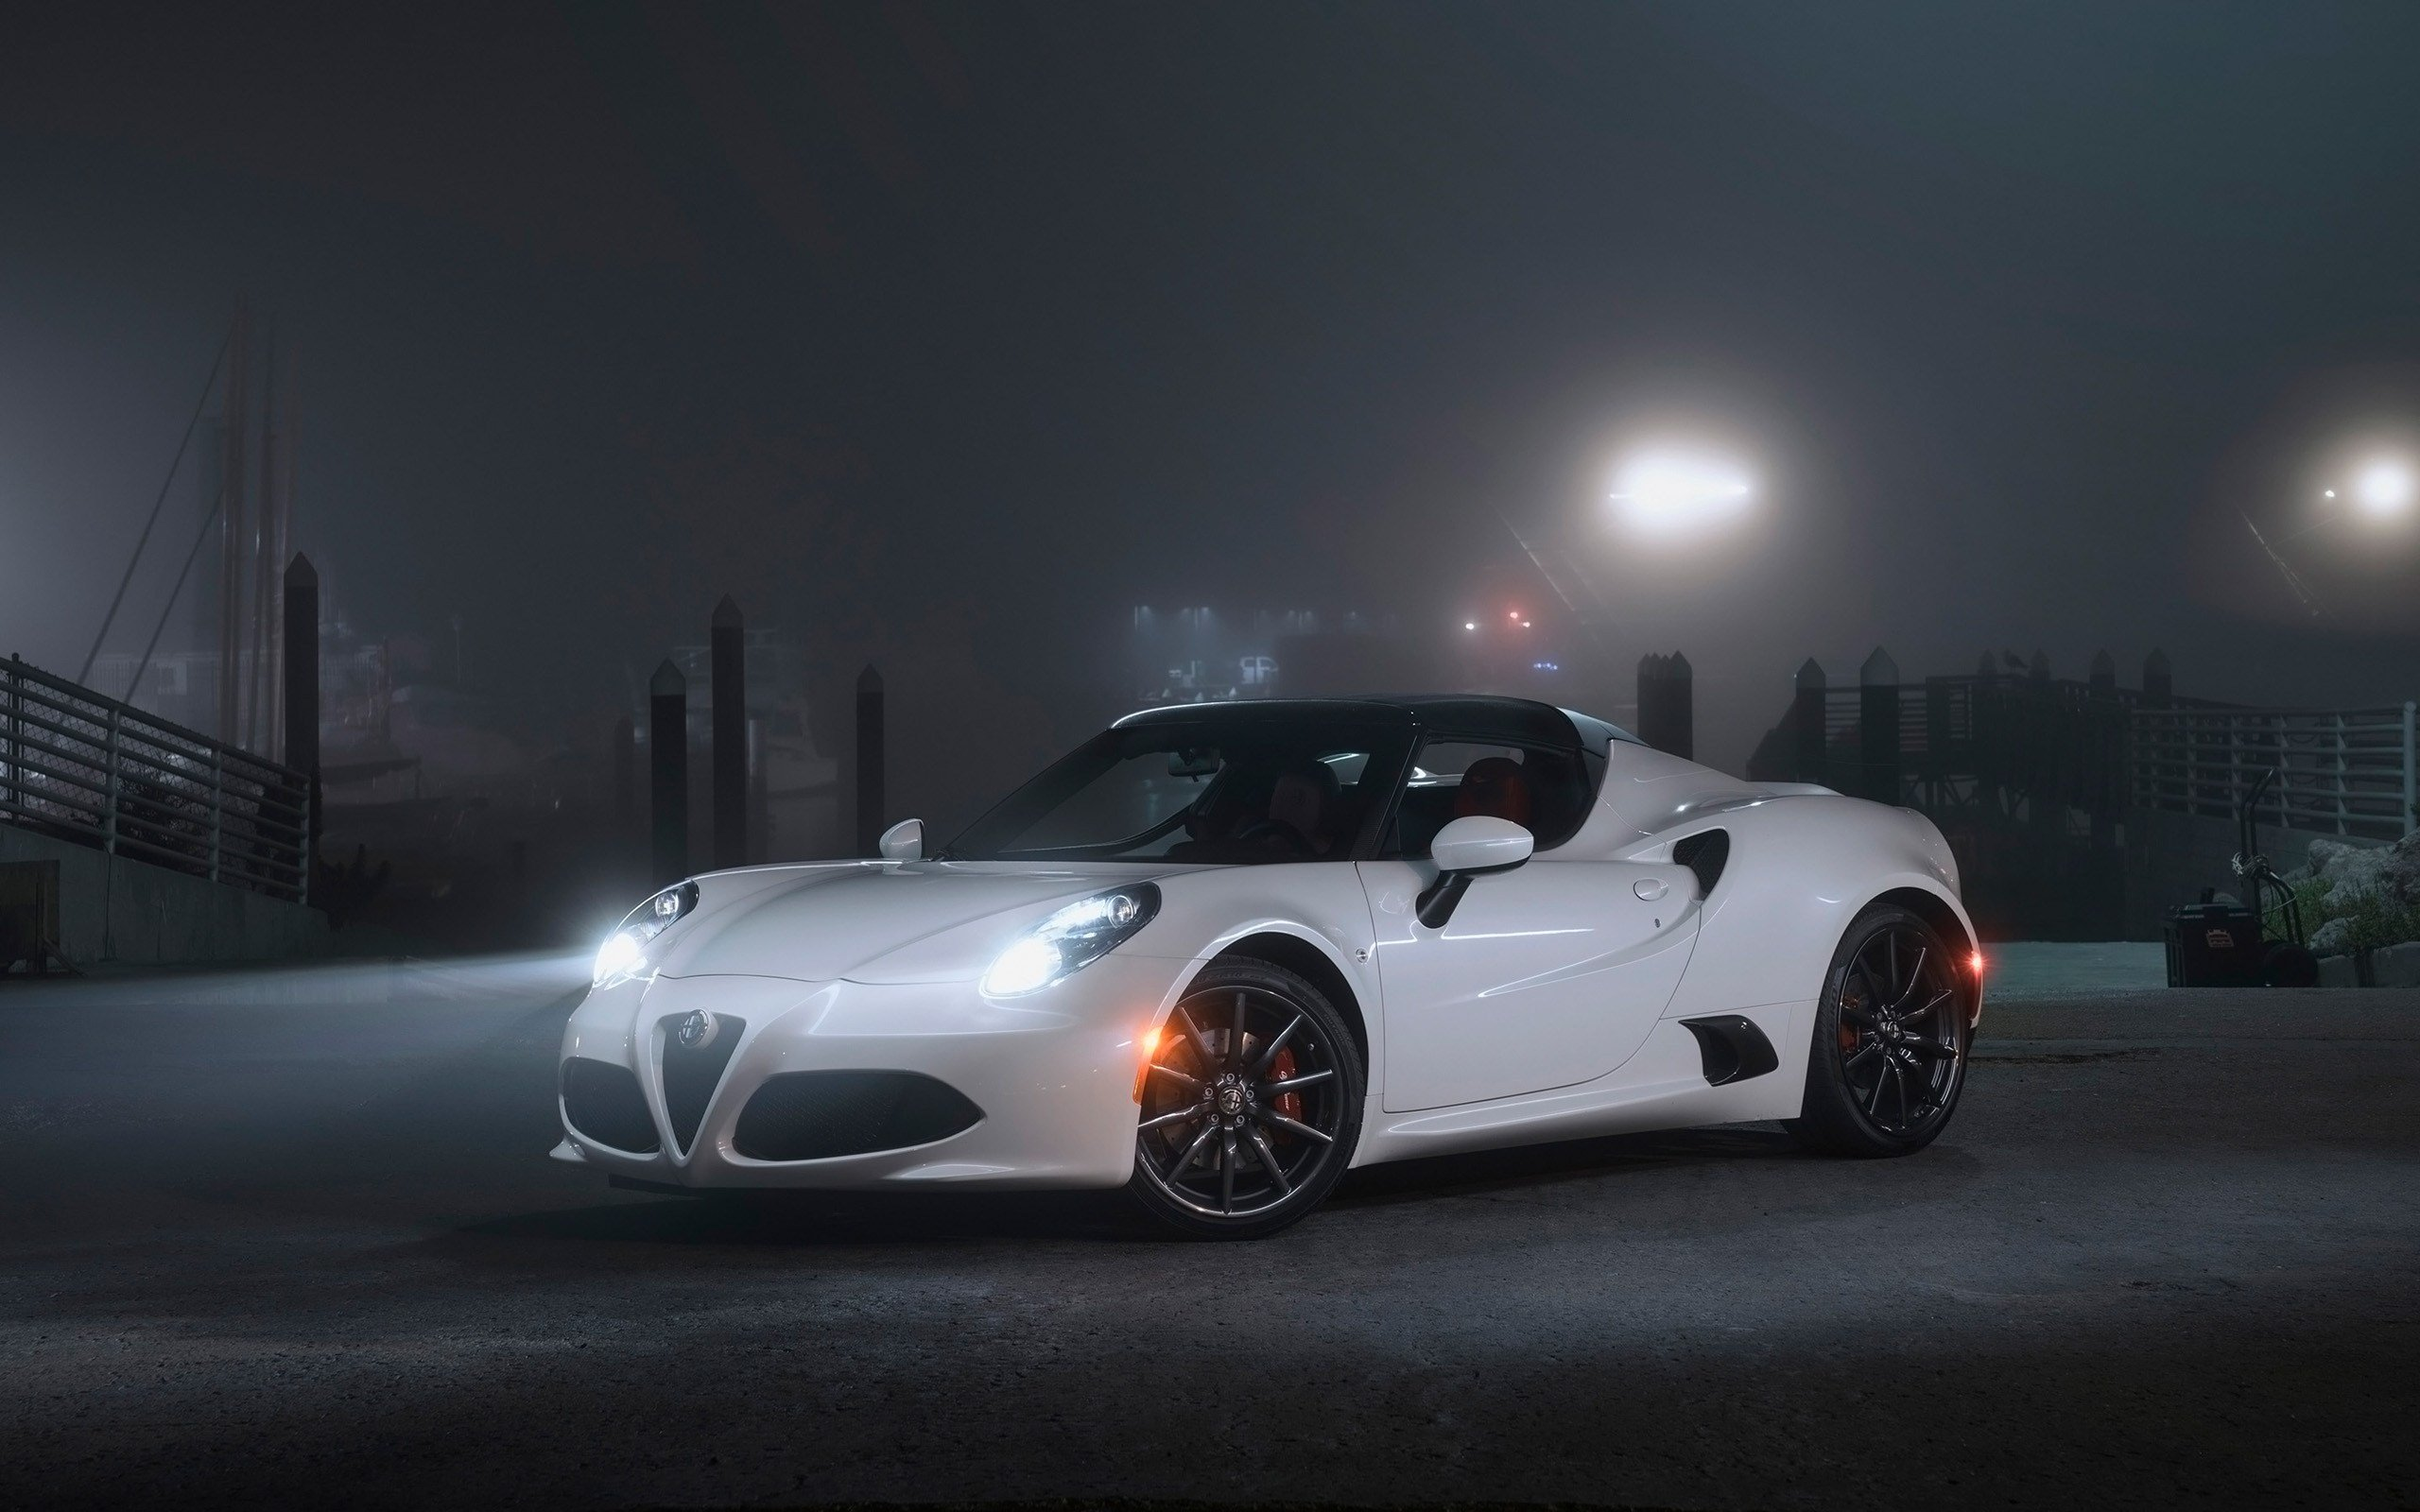 Latest 2016 Alfa Romeo 4C Spider Wallpaper Hd Car Wallpapers Free Download